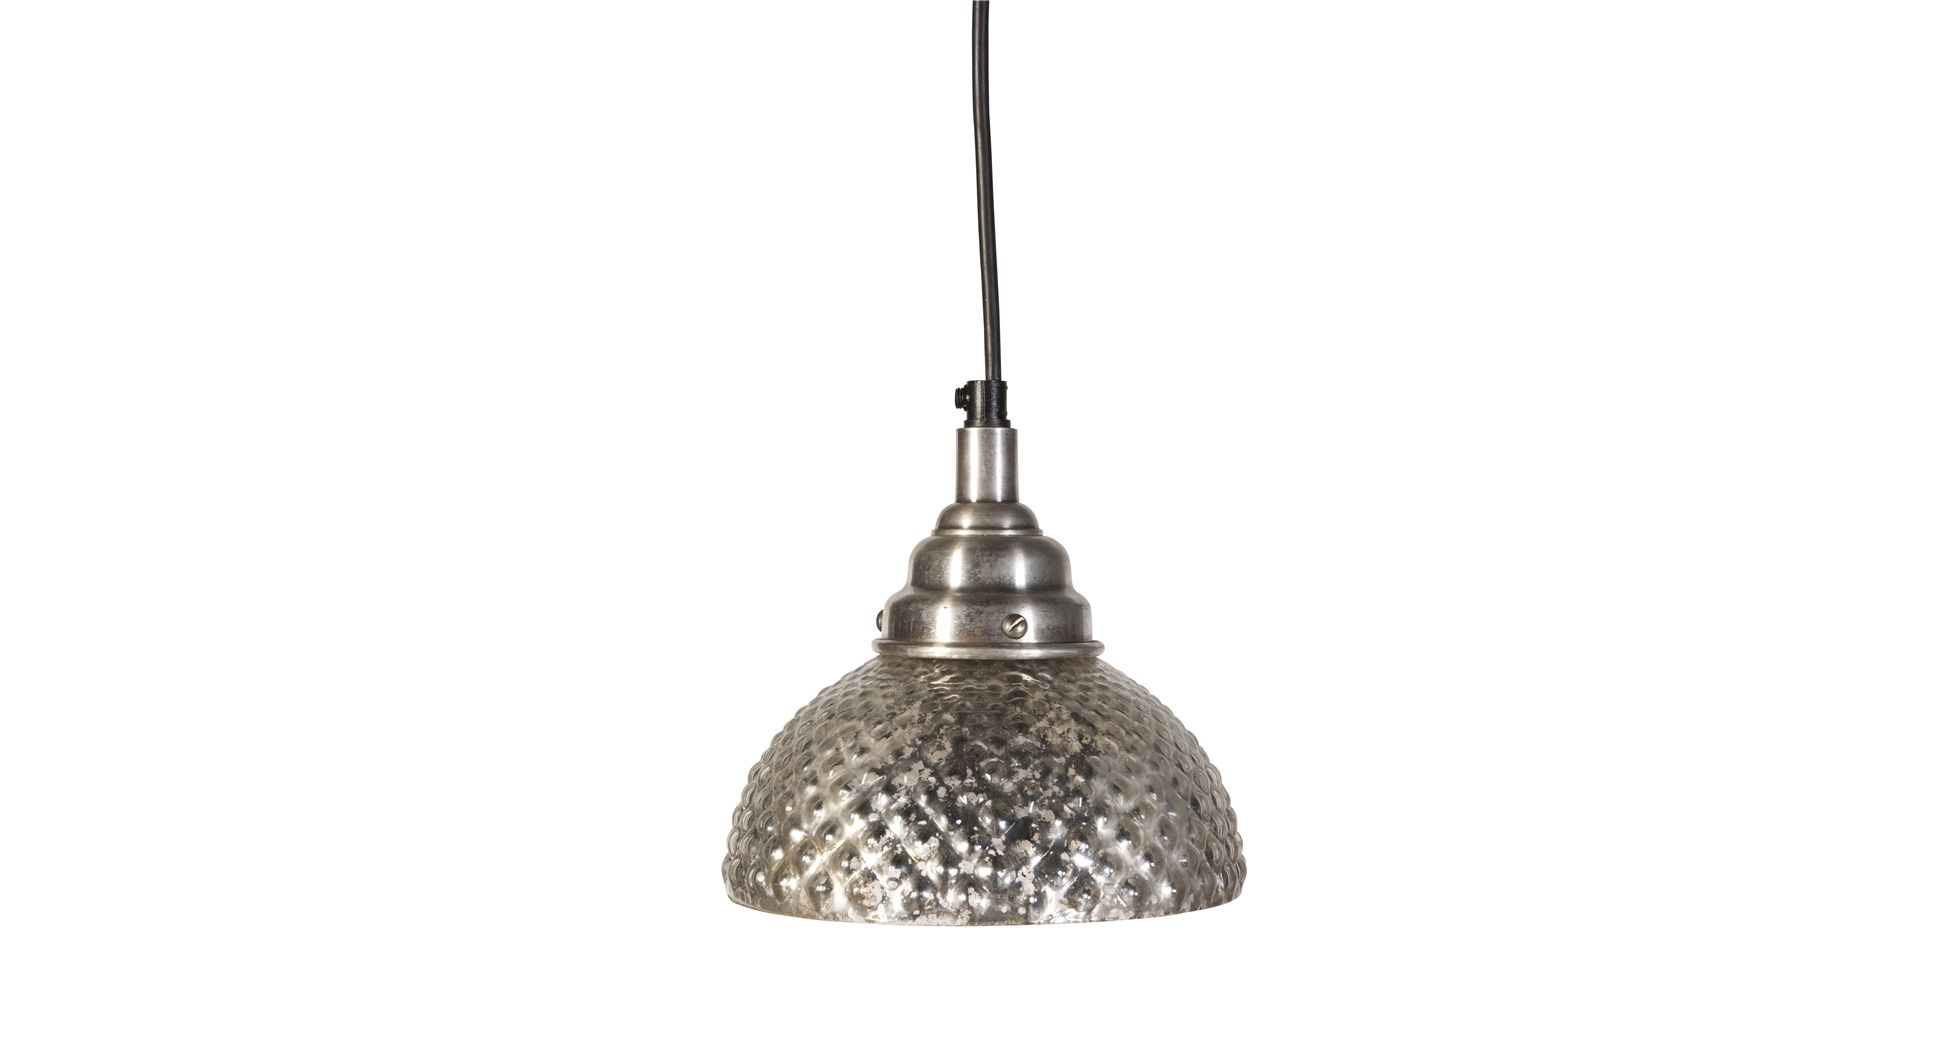 Mercury Glass Pendant Light Fixture Fascinating Lightingmercuryglasspendantlightsatanthropologiechicour Review